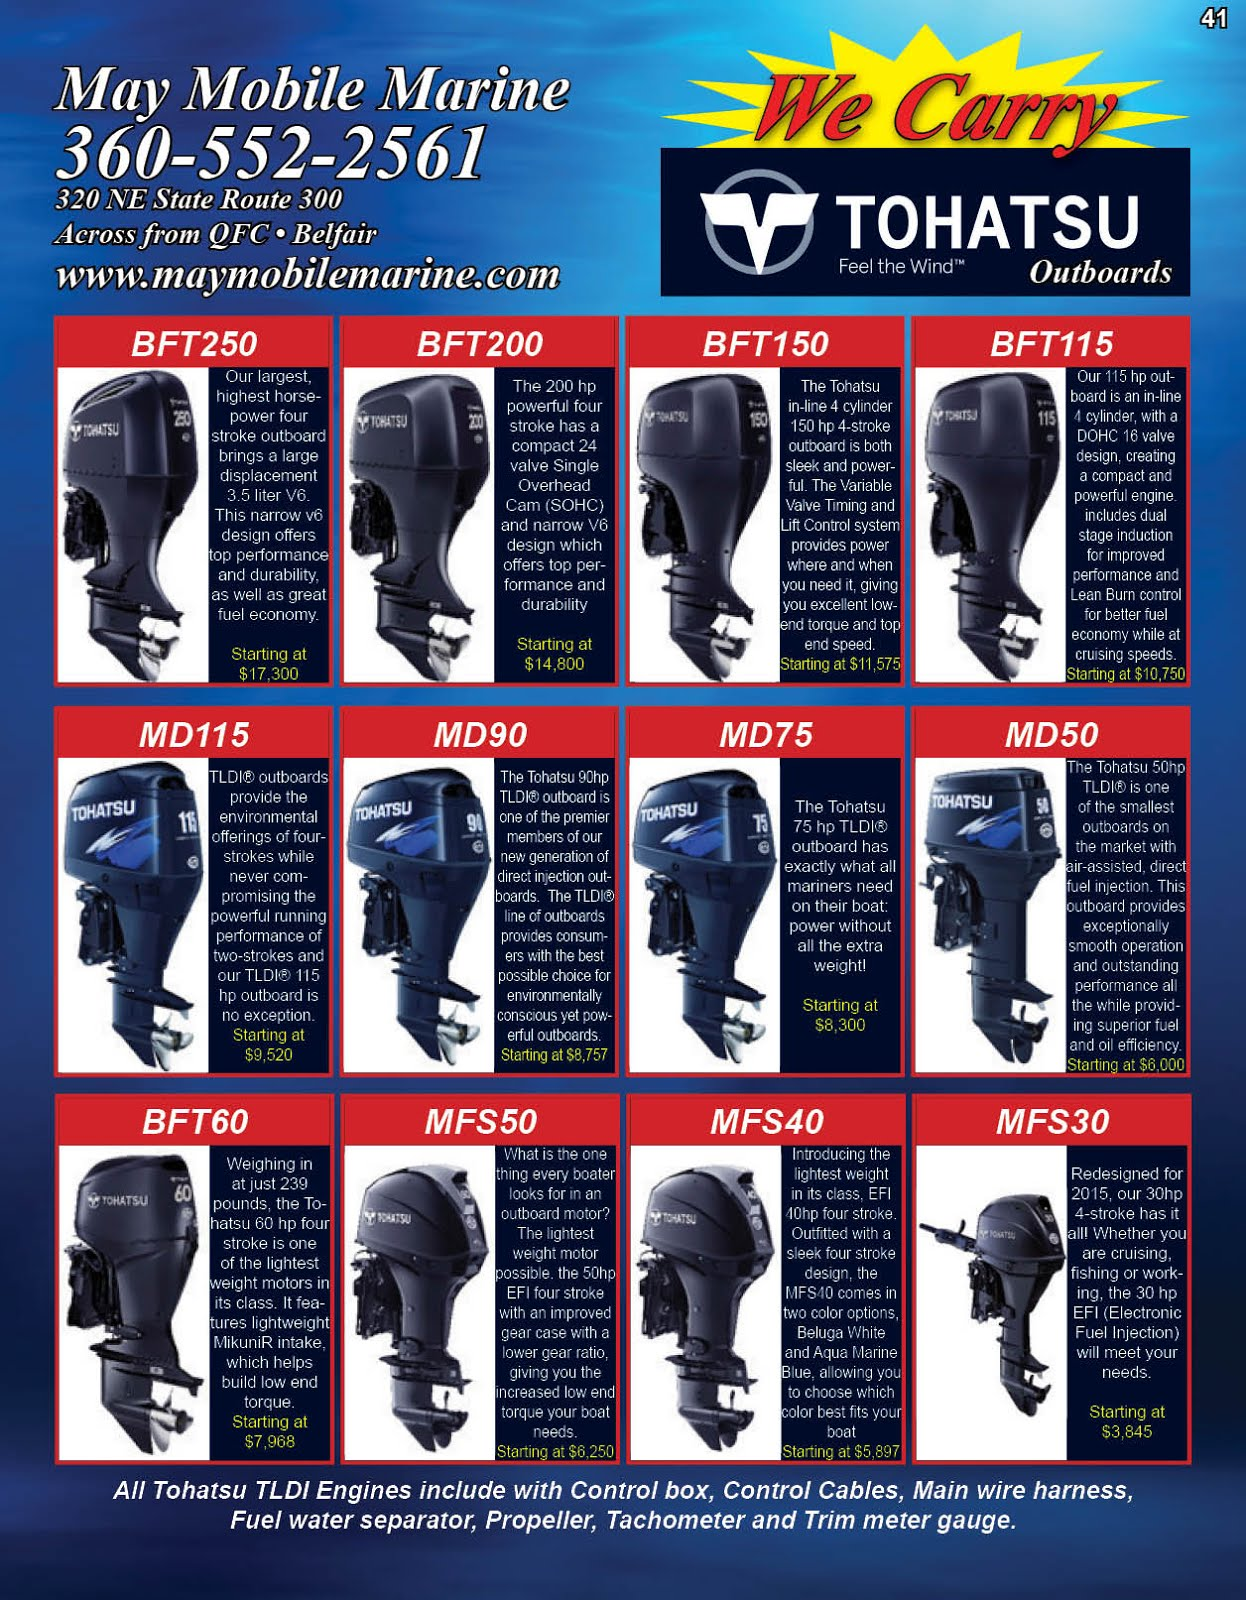 May Mobile Marine Tohatsu Outboard Motor Sale!!